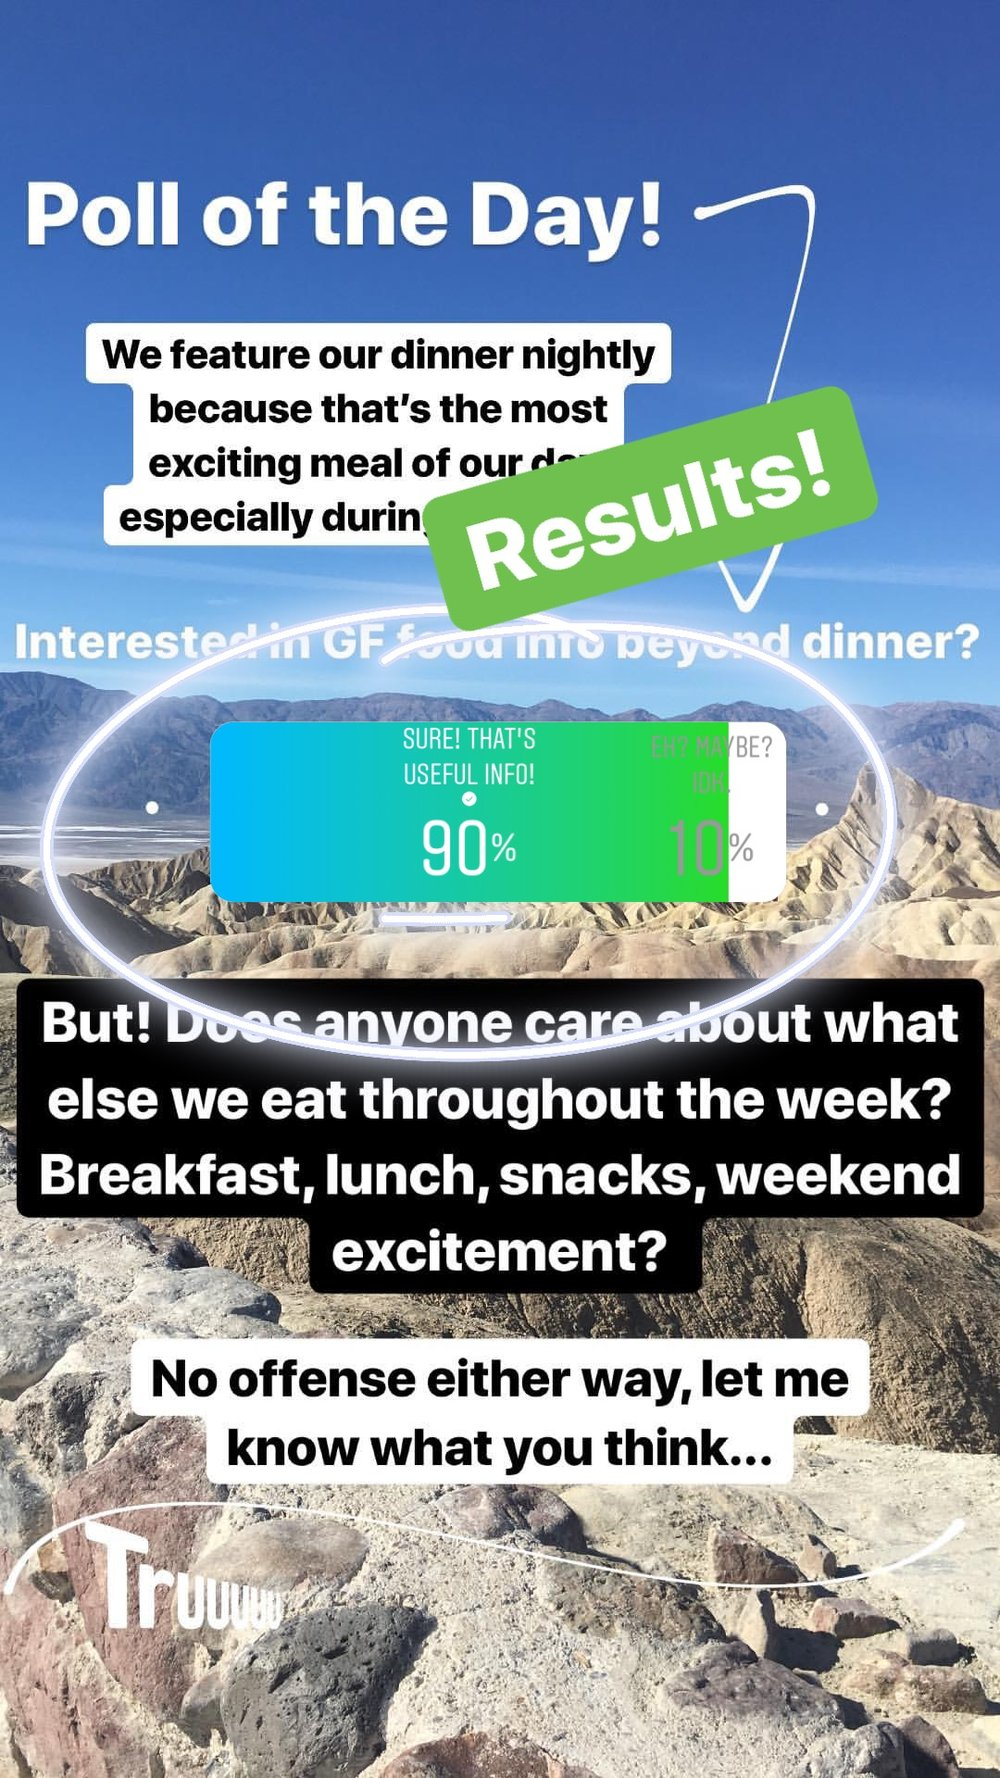 Well, thank you for this insight! I'm honored to know that most of you wouldn't mind a little beyond-dinner info about our other meals/snacks during the week. While it may not be the most overwhelming information, it might be helpful for those seeking daytime ideas for breakfast and lunches that are gluten free. Stay tuned as a daytime food series could just be in the works!